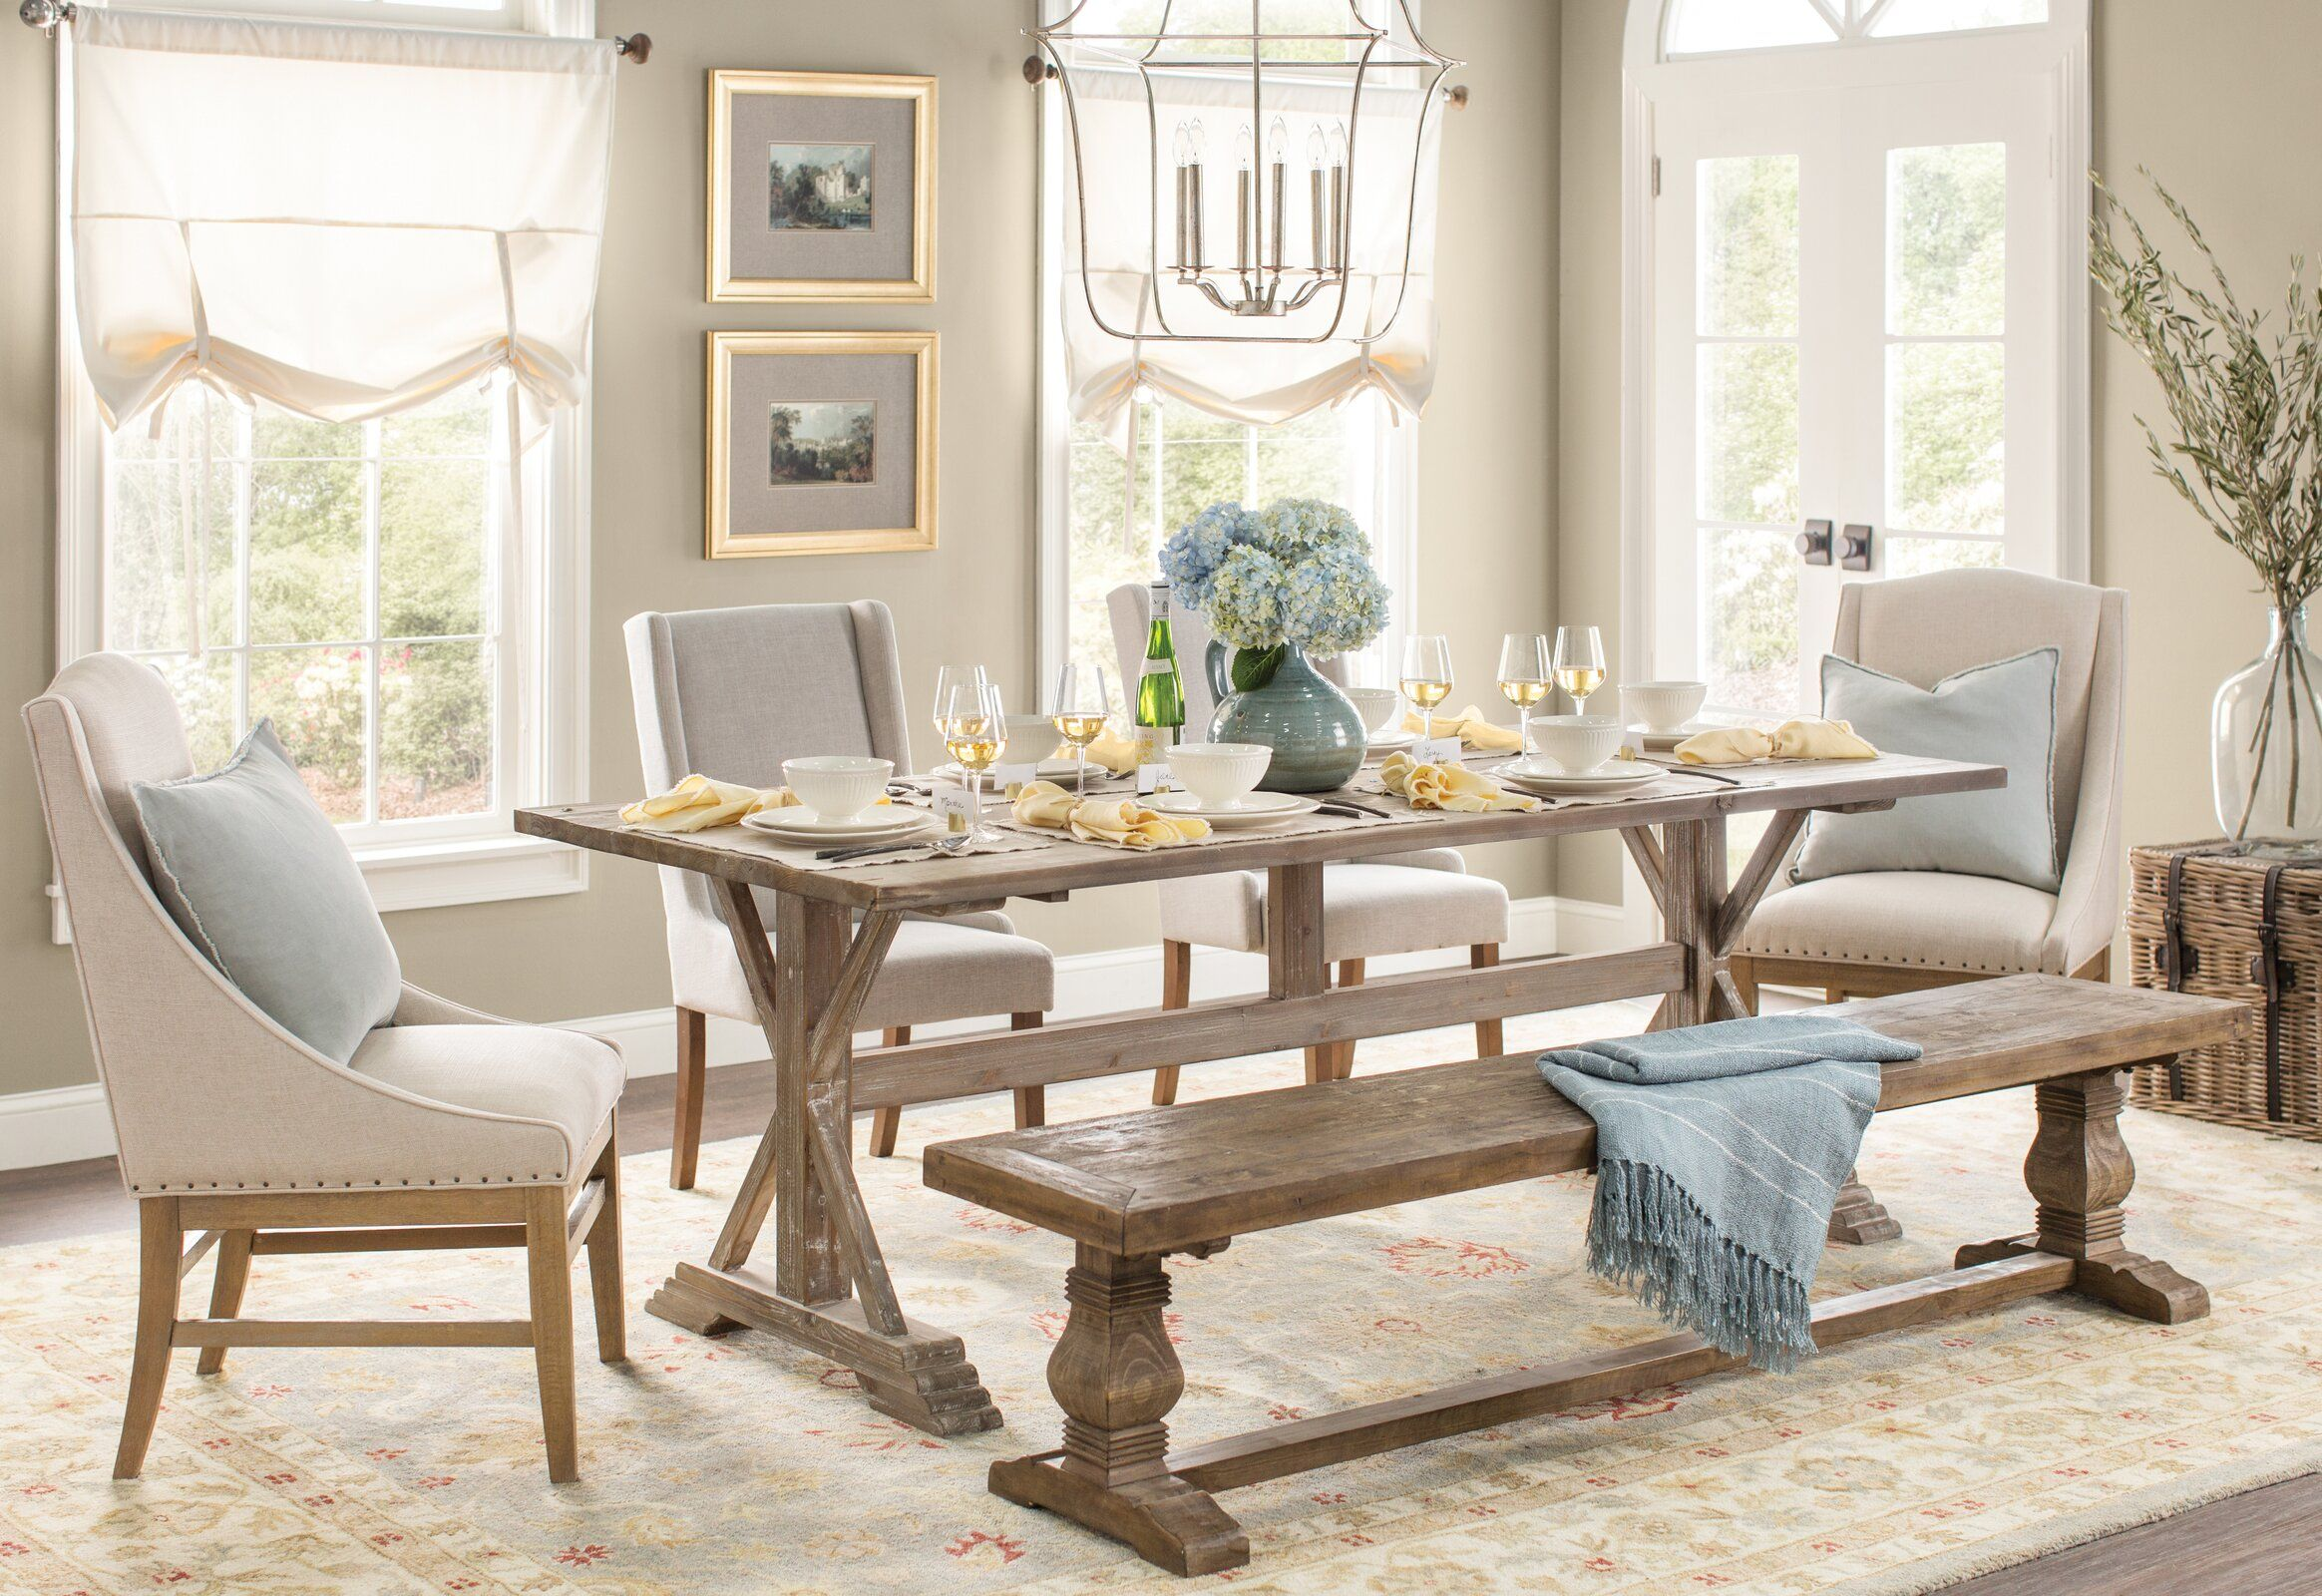 Outstanding Dining Room Design Photo By Birch Lane Remodel In 2019 Caraccident5 Cool Chair Designs And Ideas Caraccident5Info